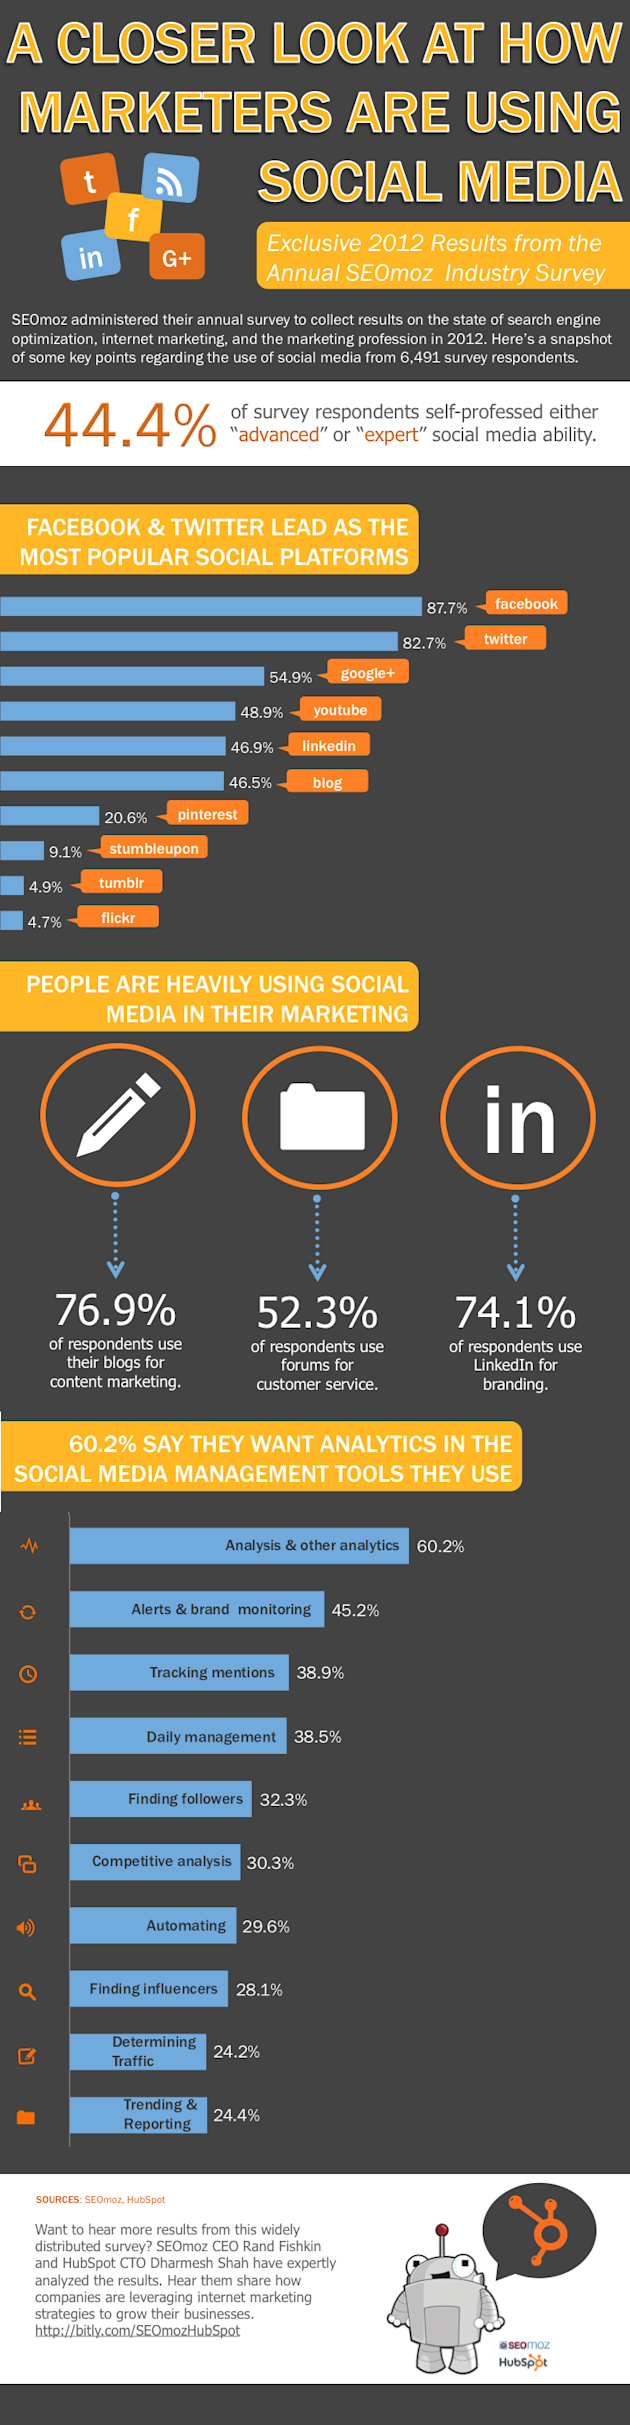 Can You Measure Content Marketing & Social Media ROI? image seomoz hubspot infographic social media usage 2012